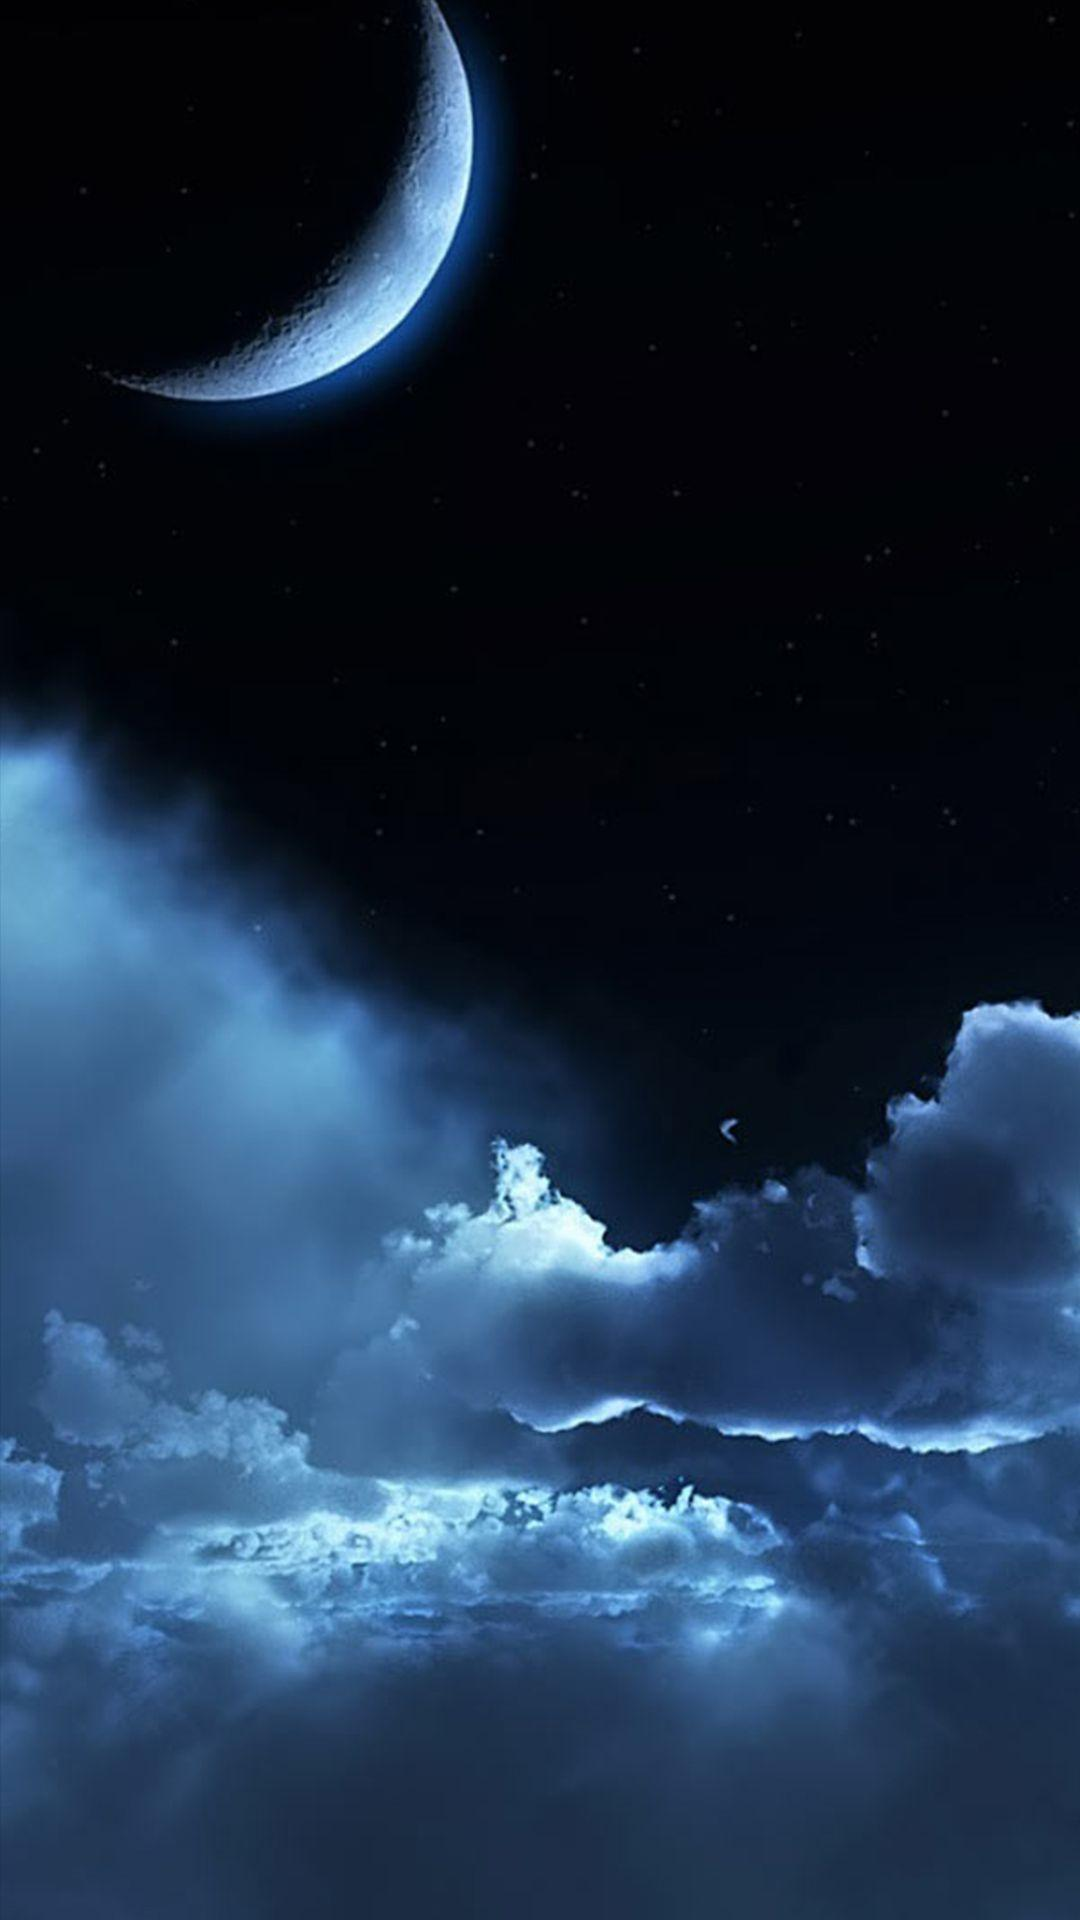 Night Phone HD Wallpapers   Wallpaper Cave